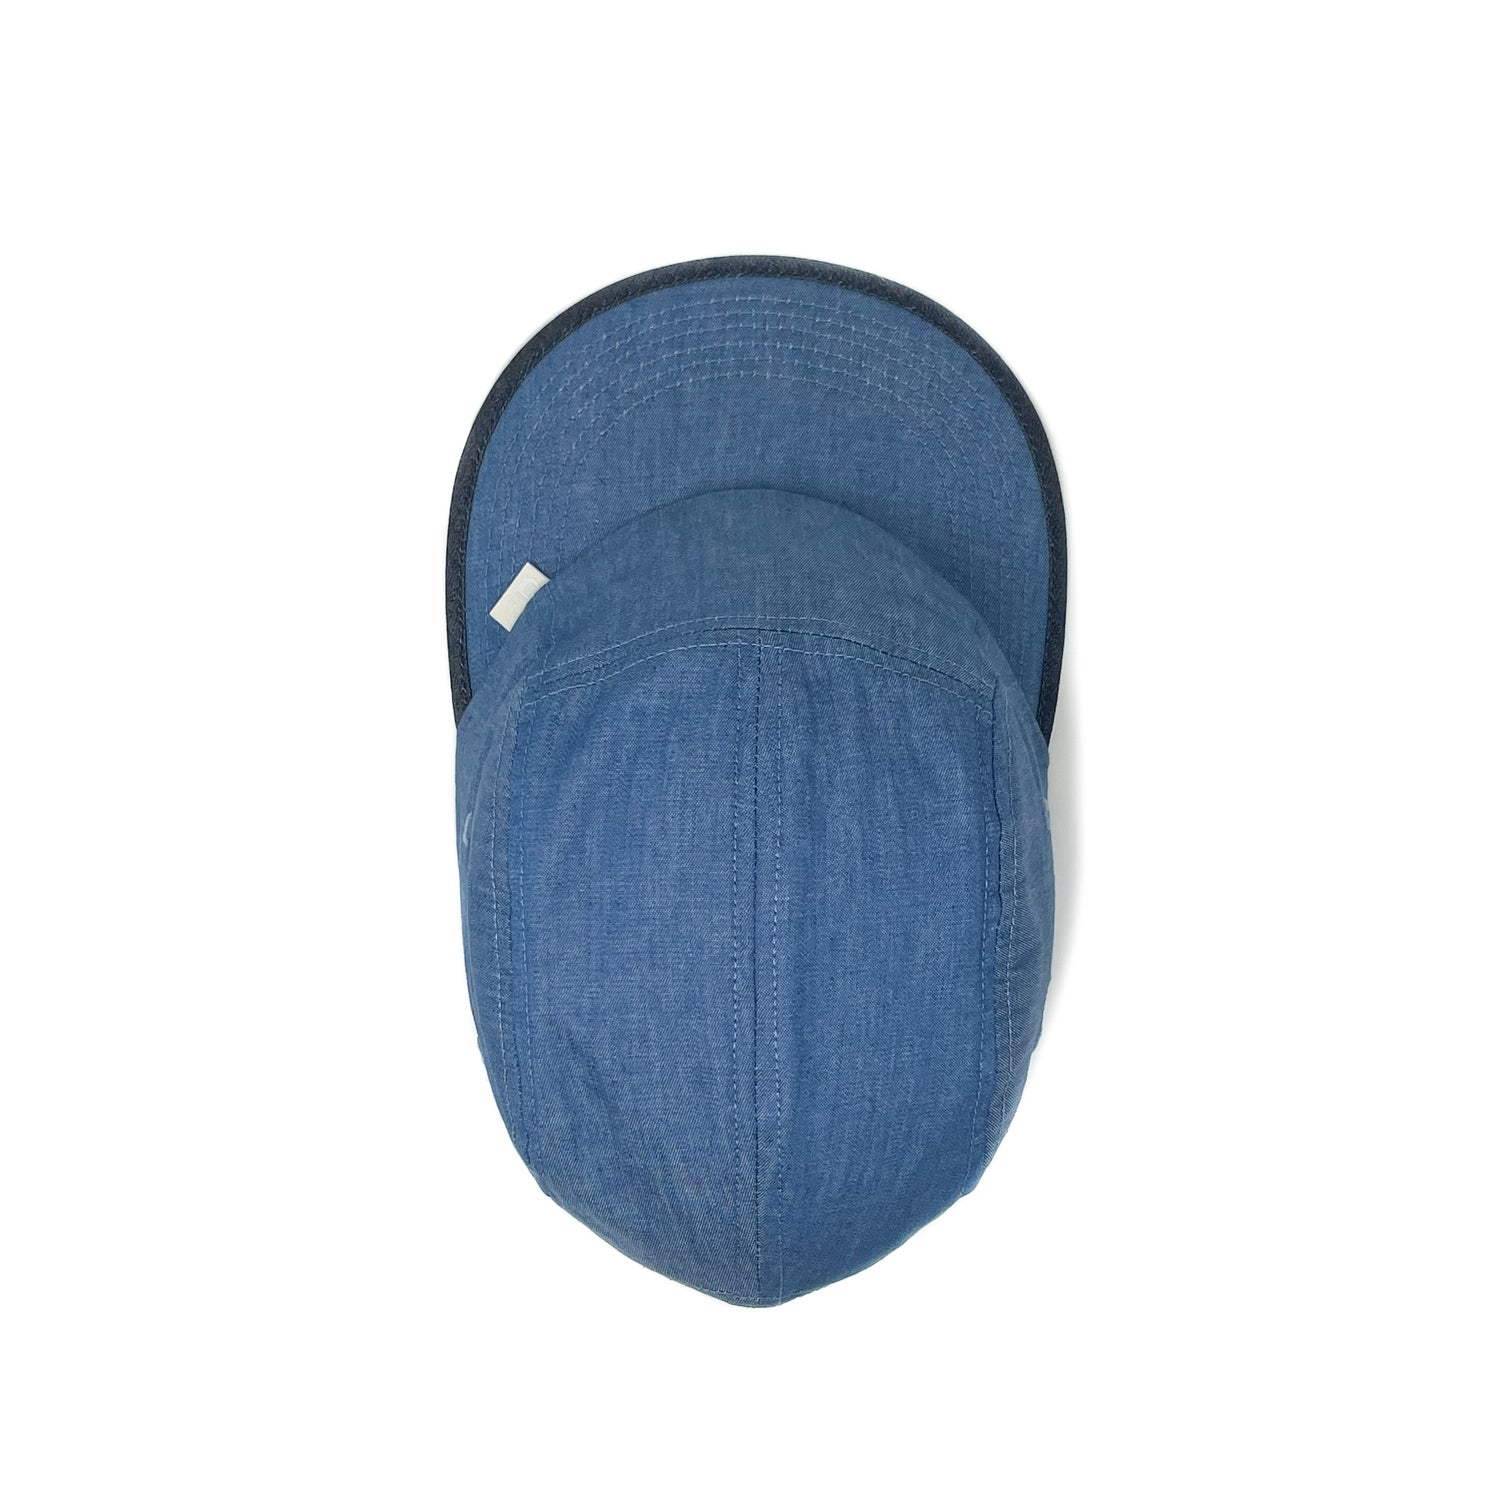 Image of RECON CAP - UP10 - POLY CHAMBRAY/NAVY